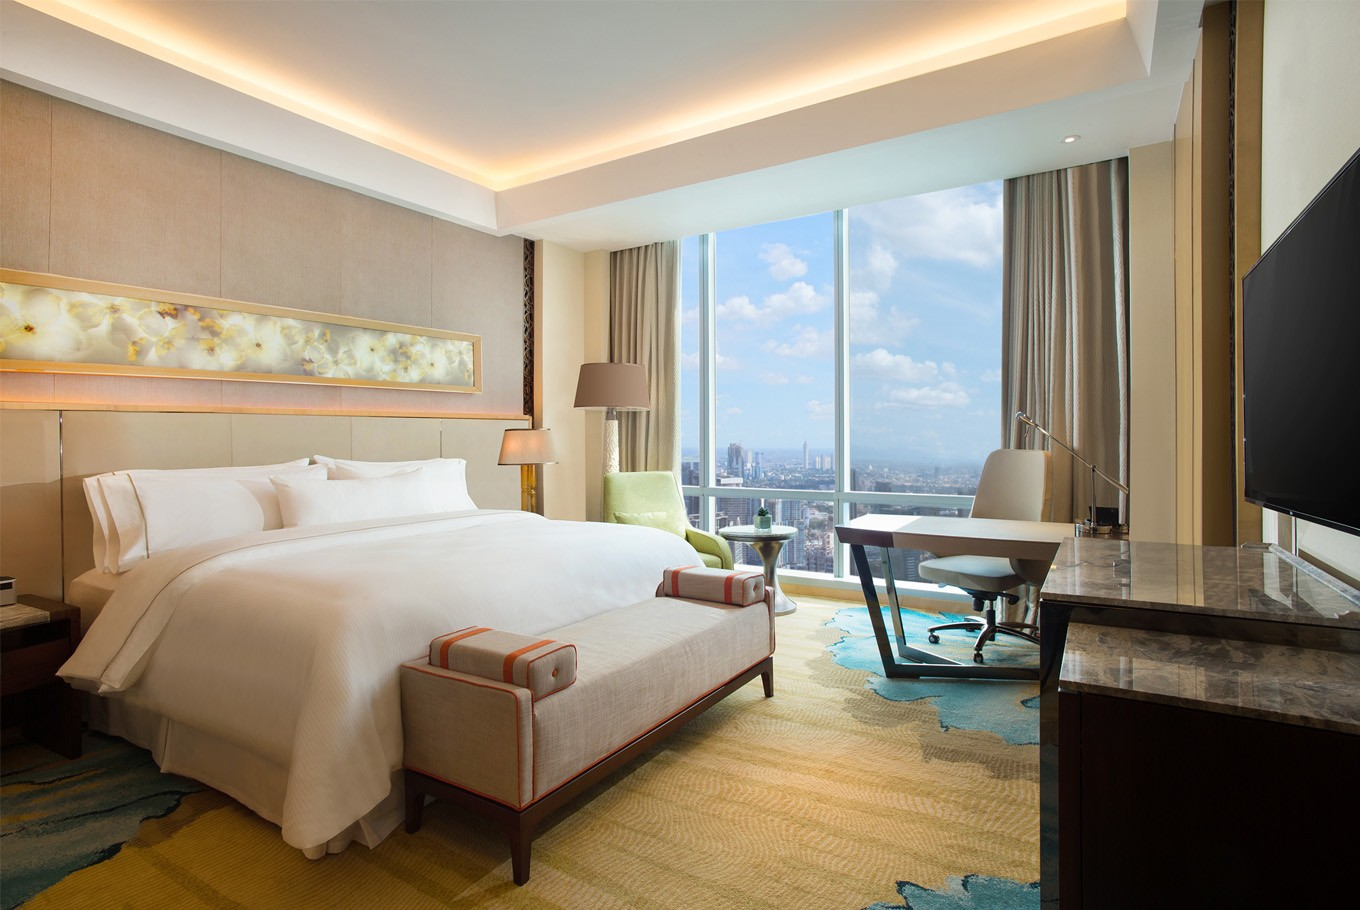 Four Jakarta hotels for a weekend staycation